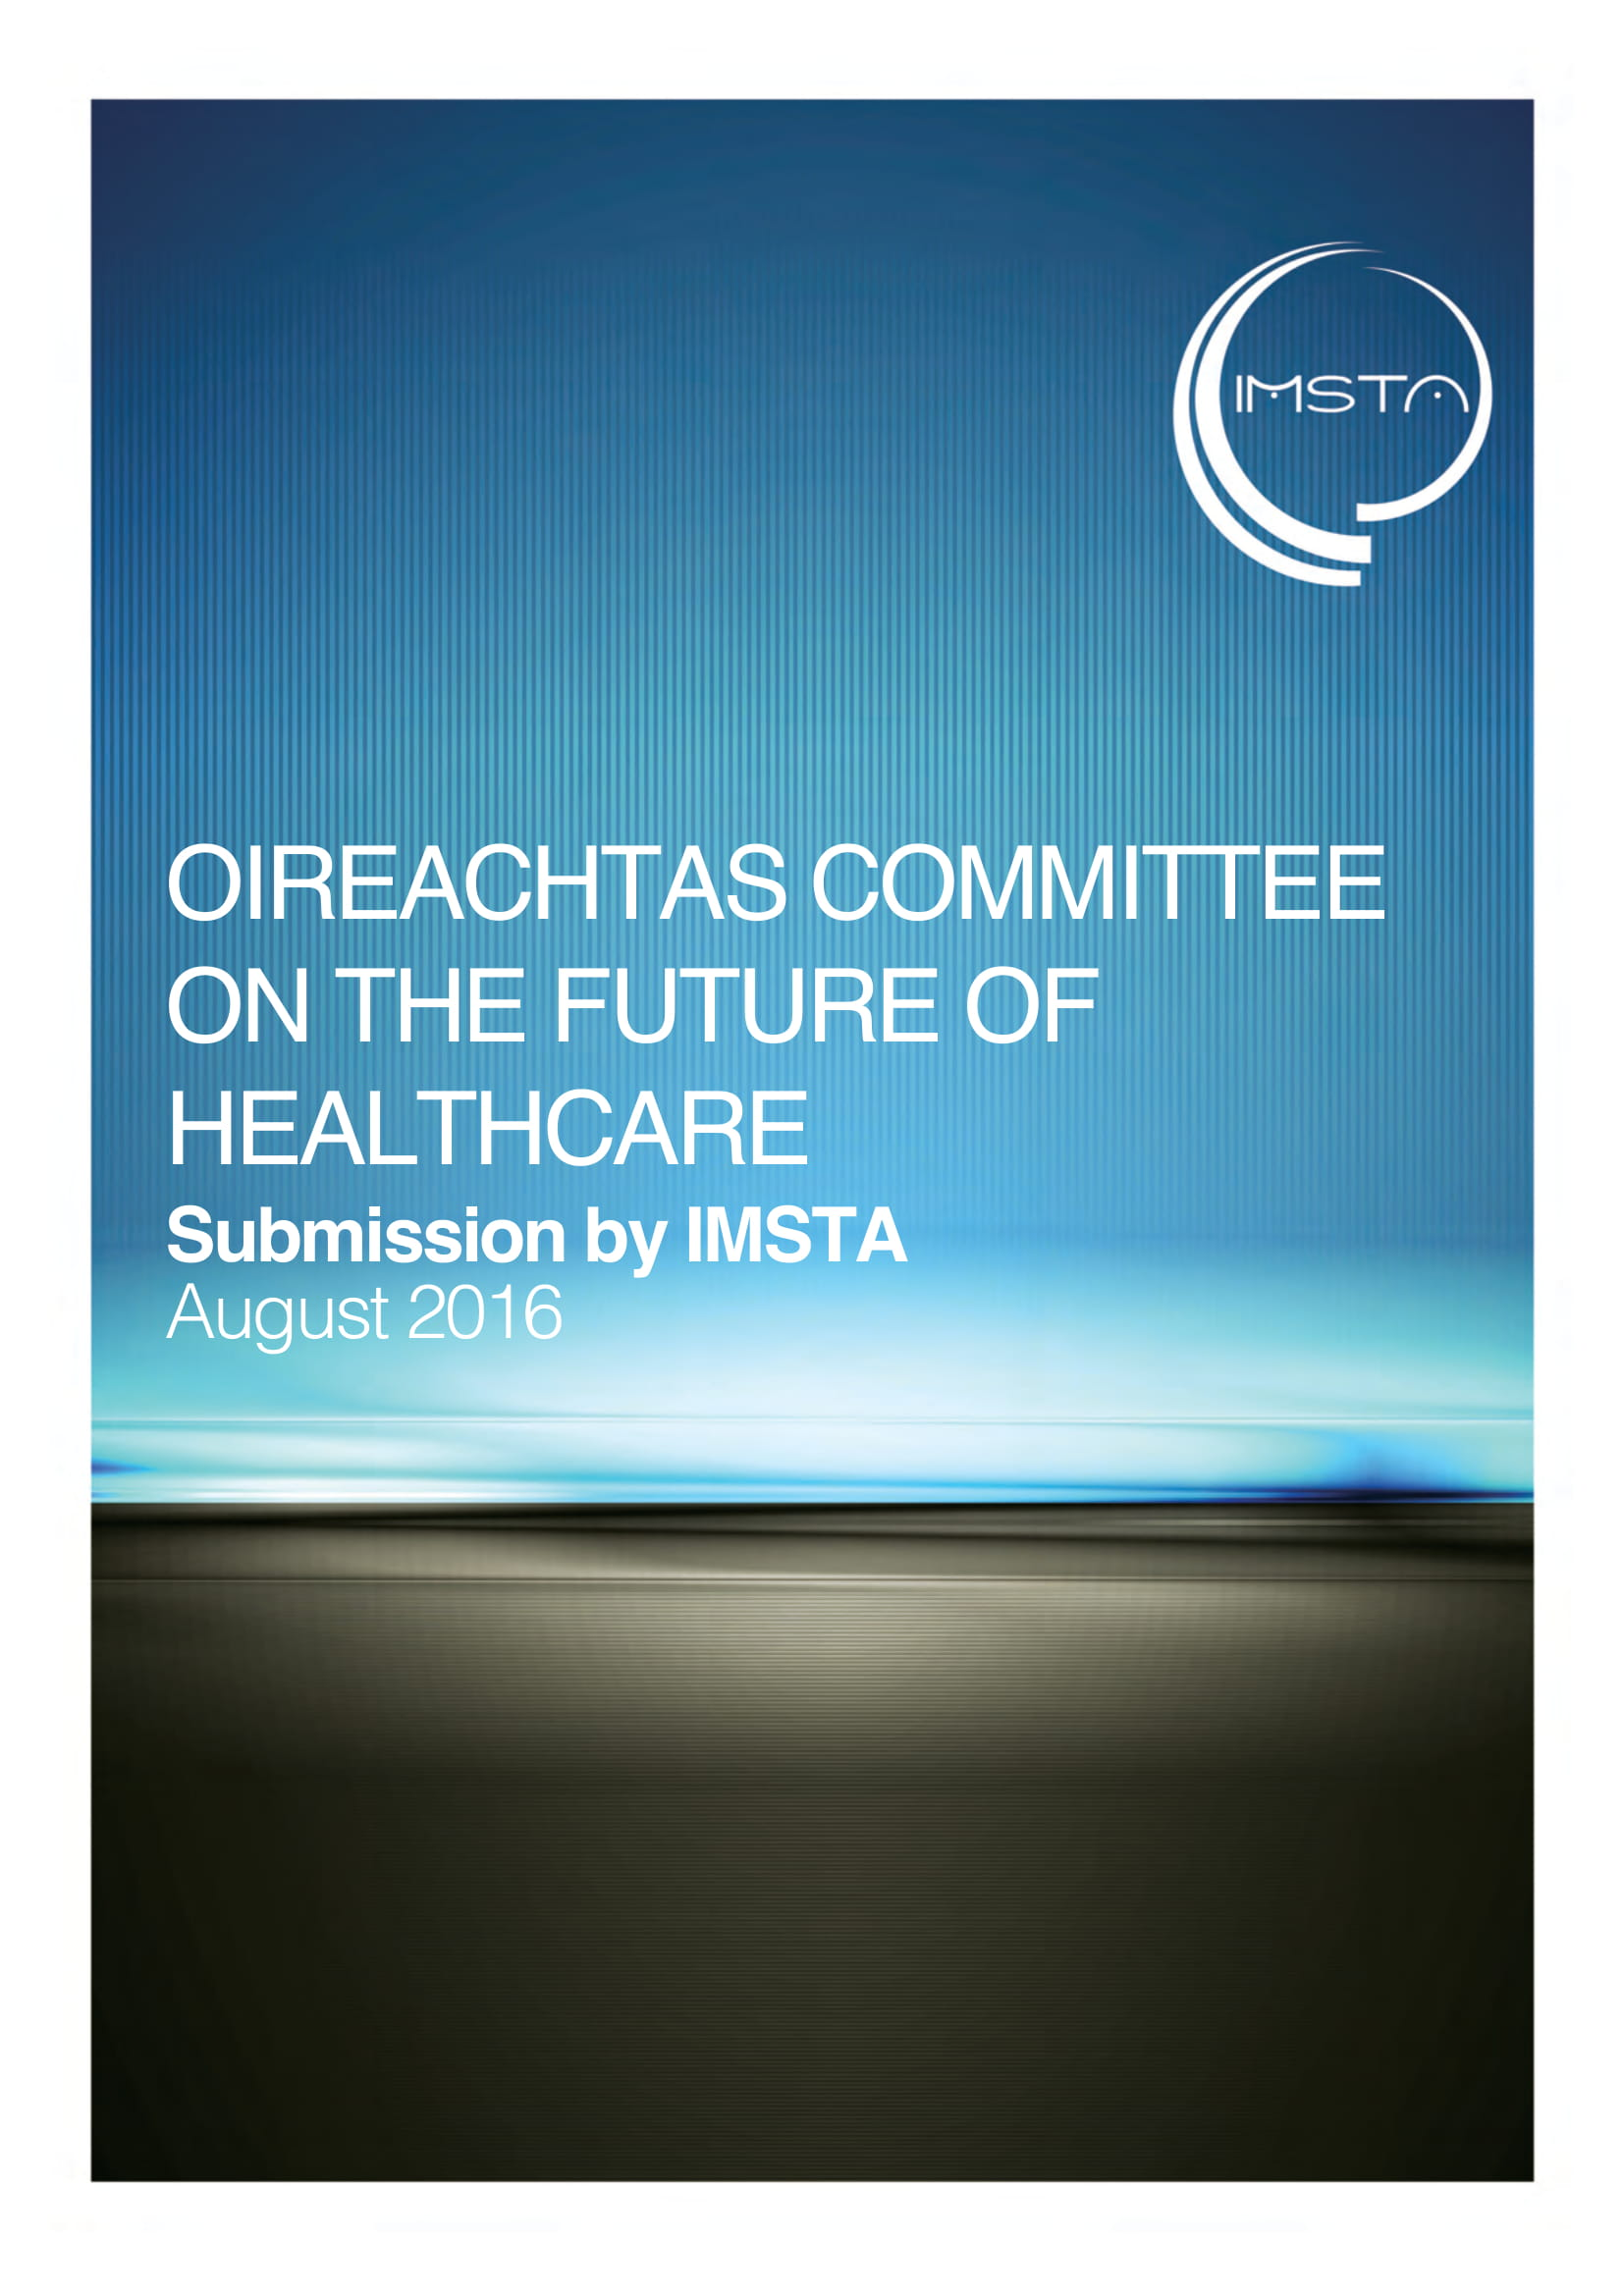 Oireachtas Committee on the Future of Healthcare